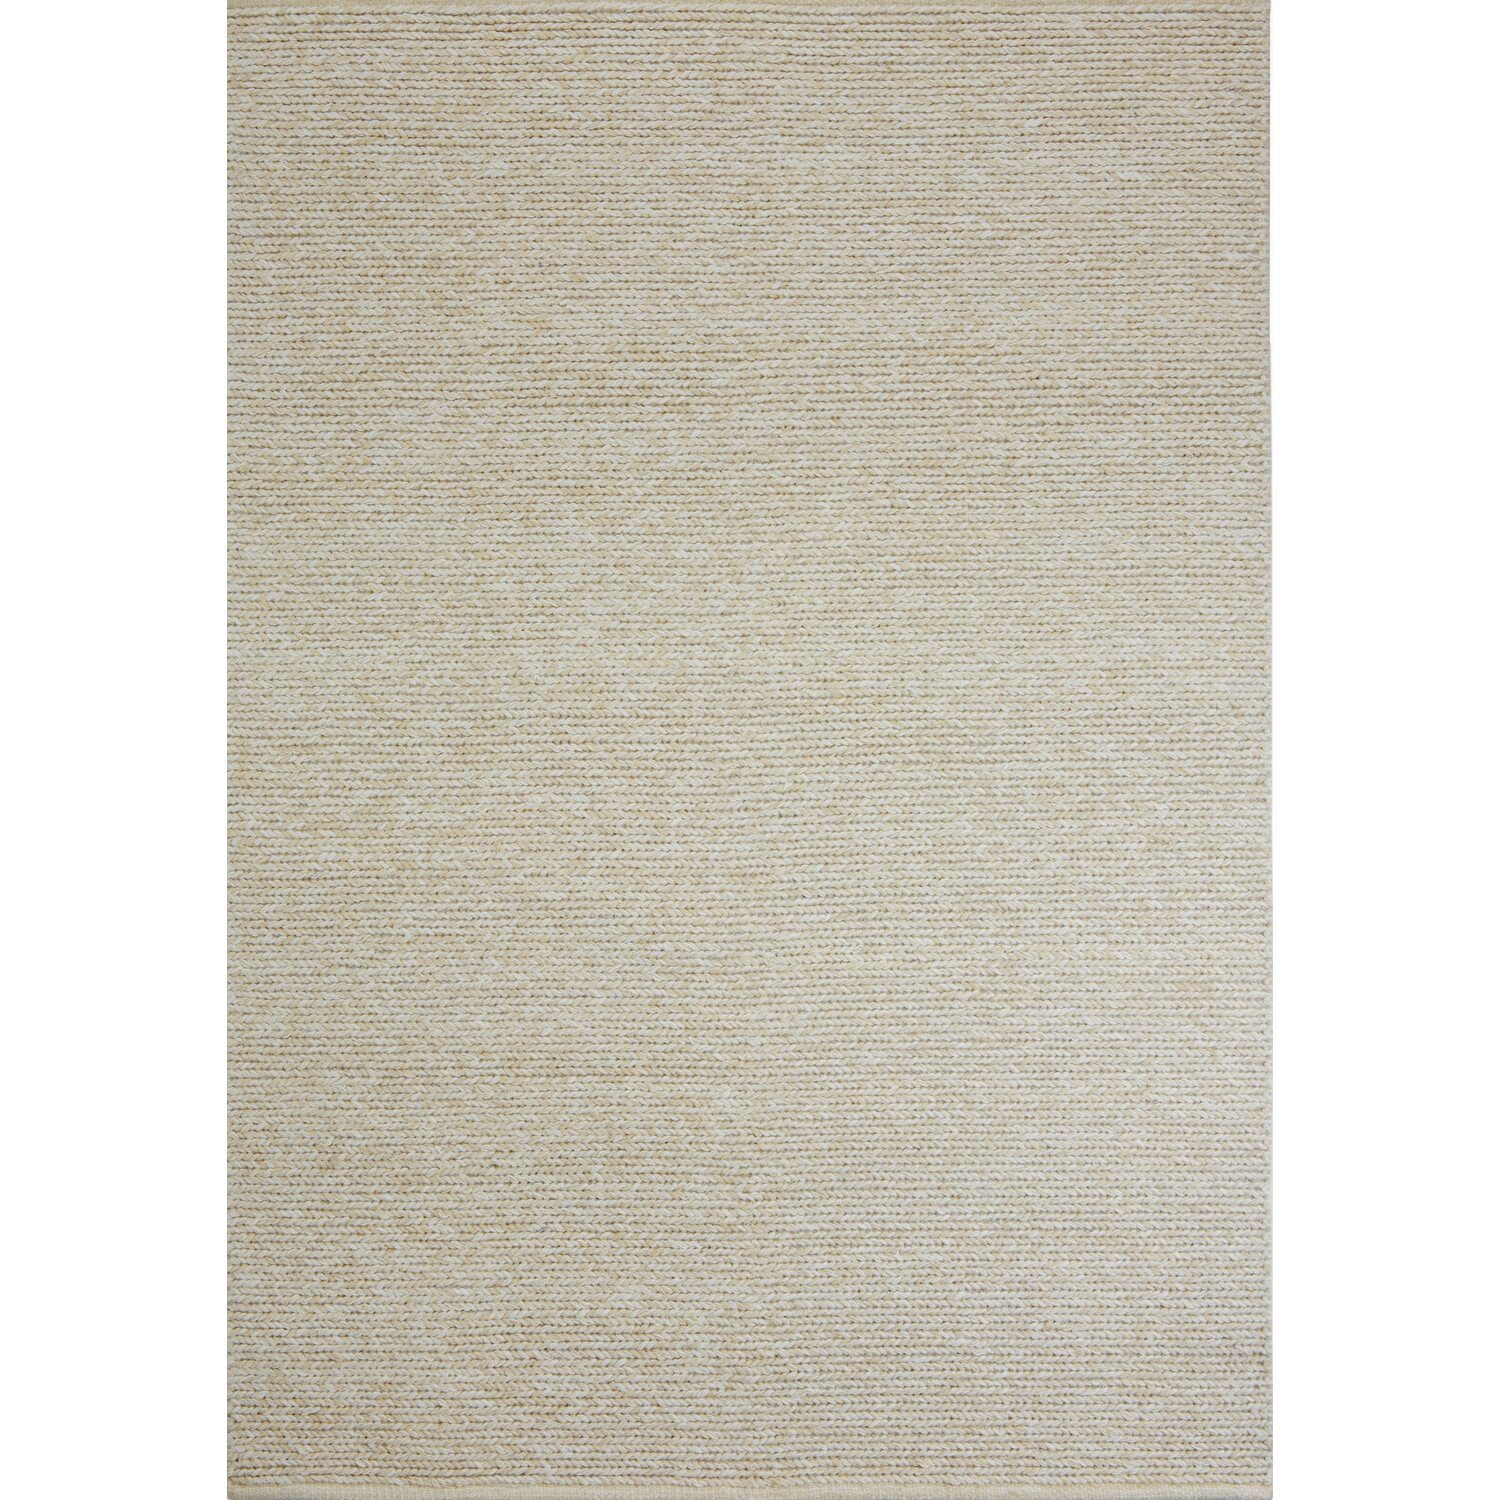 bb home passion Barbara Becker Teppich Chalet 140 cm x 200 cm Creme